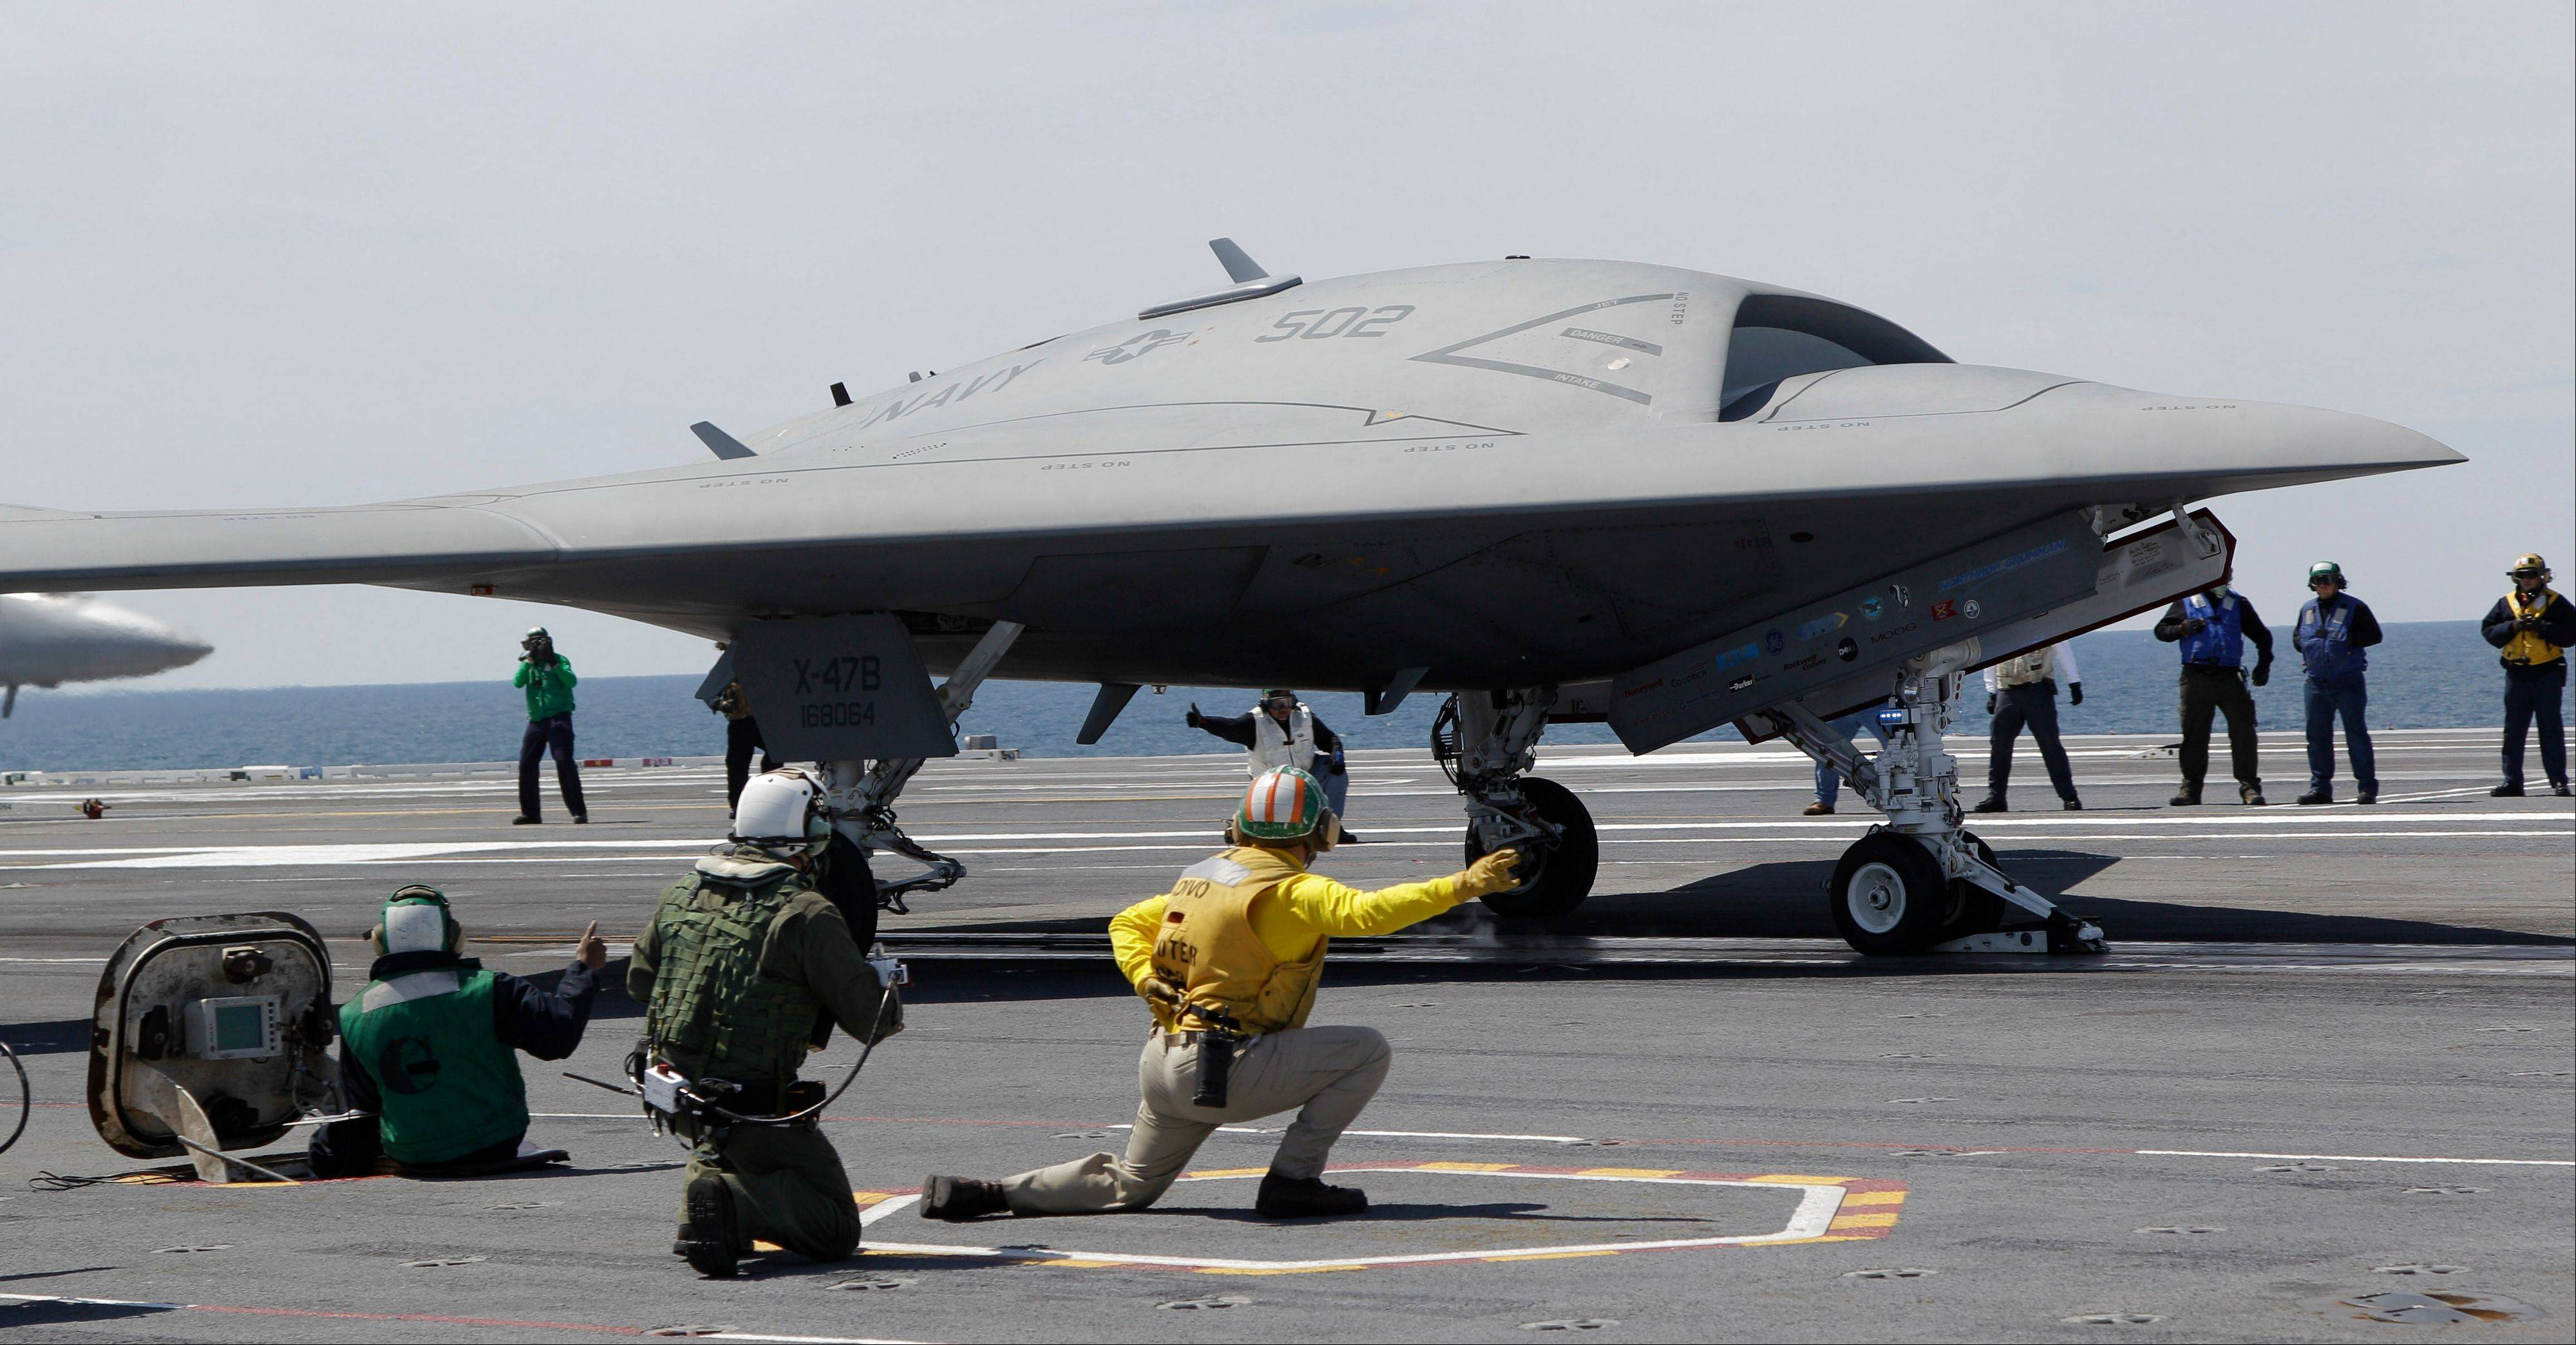 A Navy X-47B drone is launch